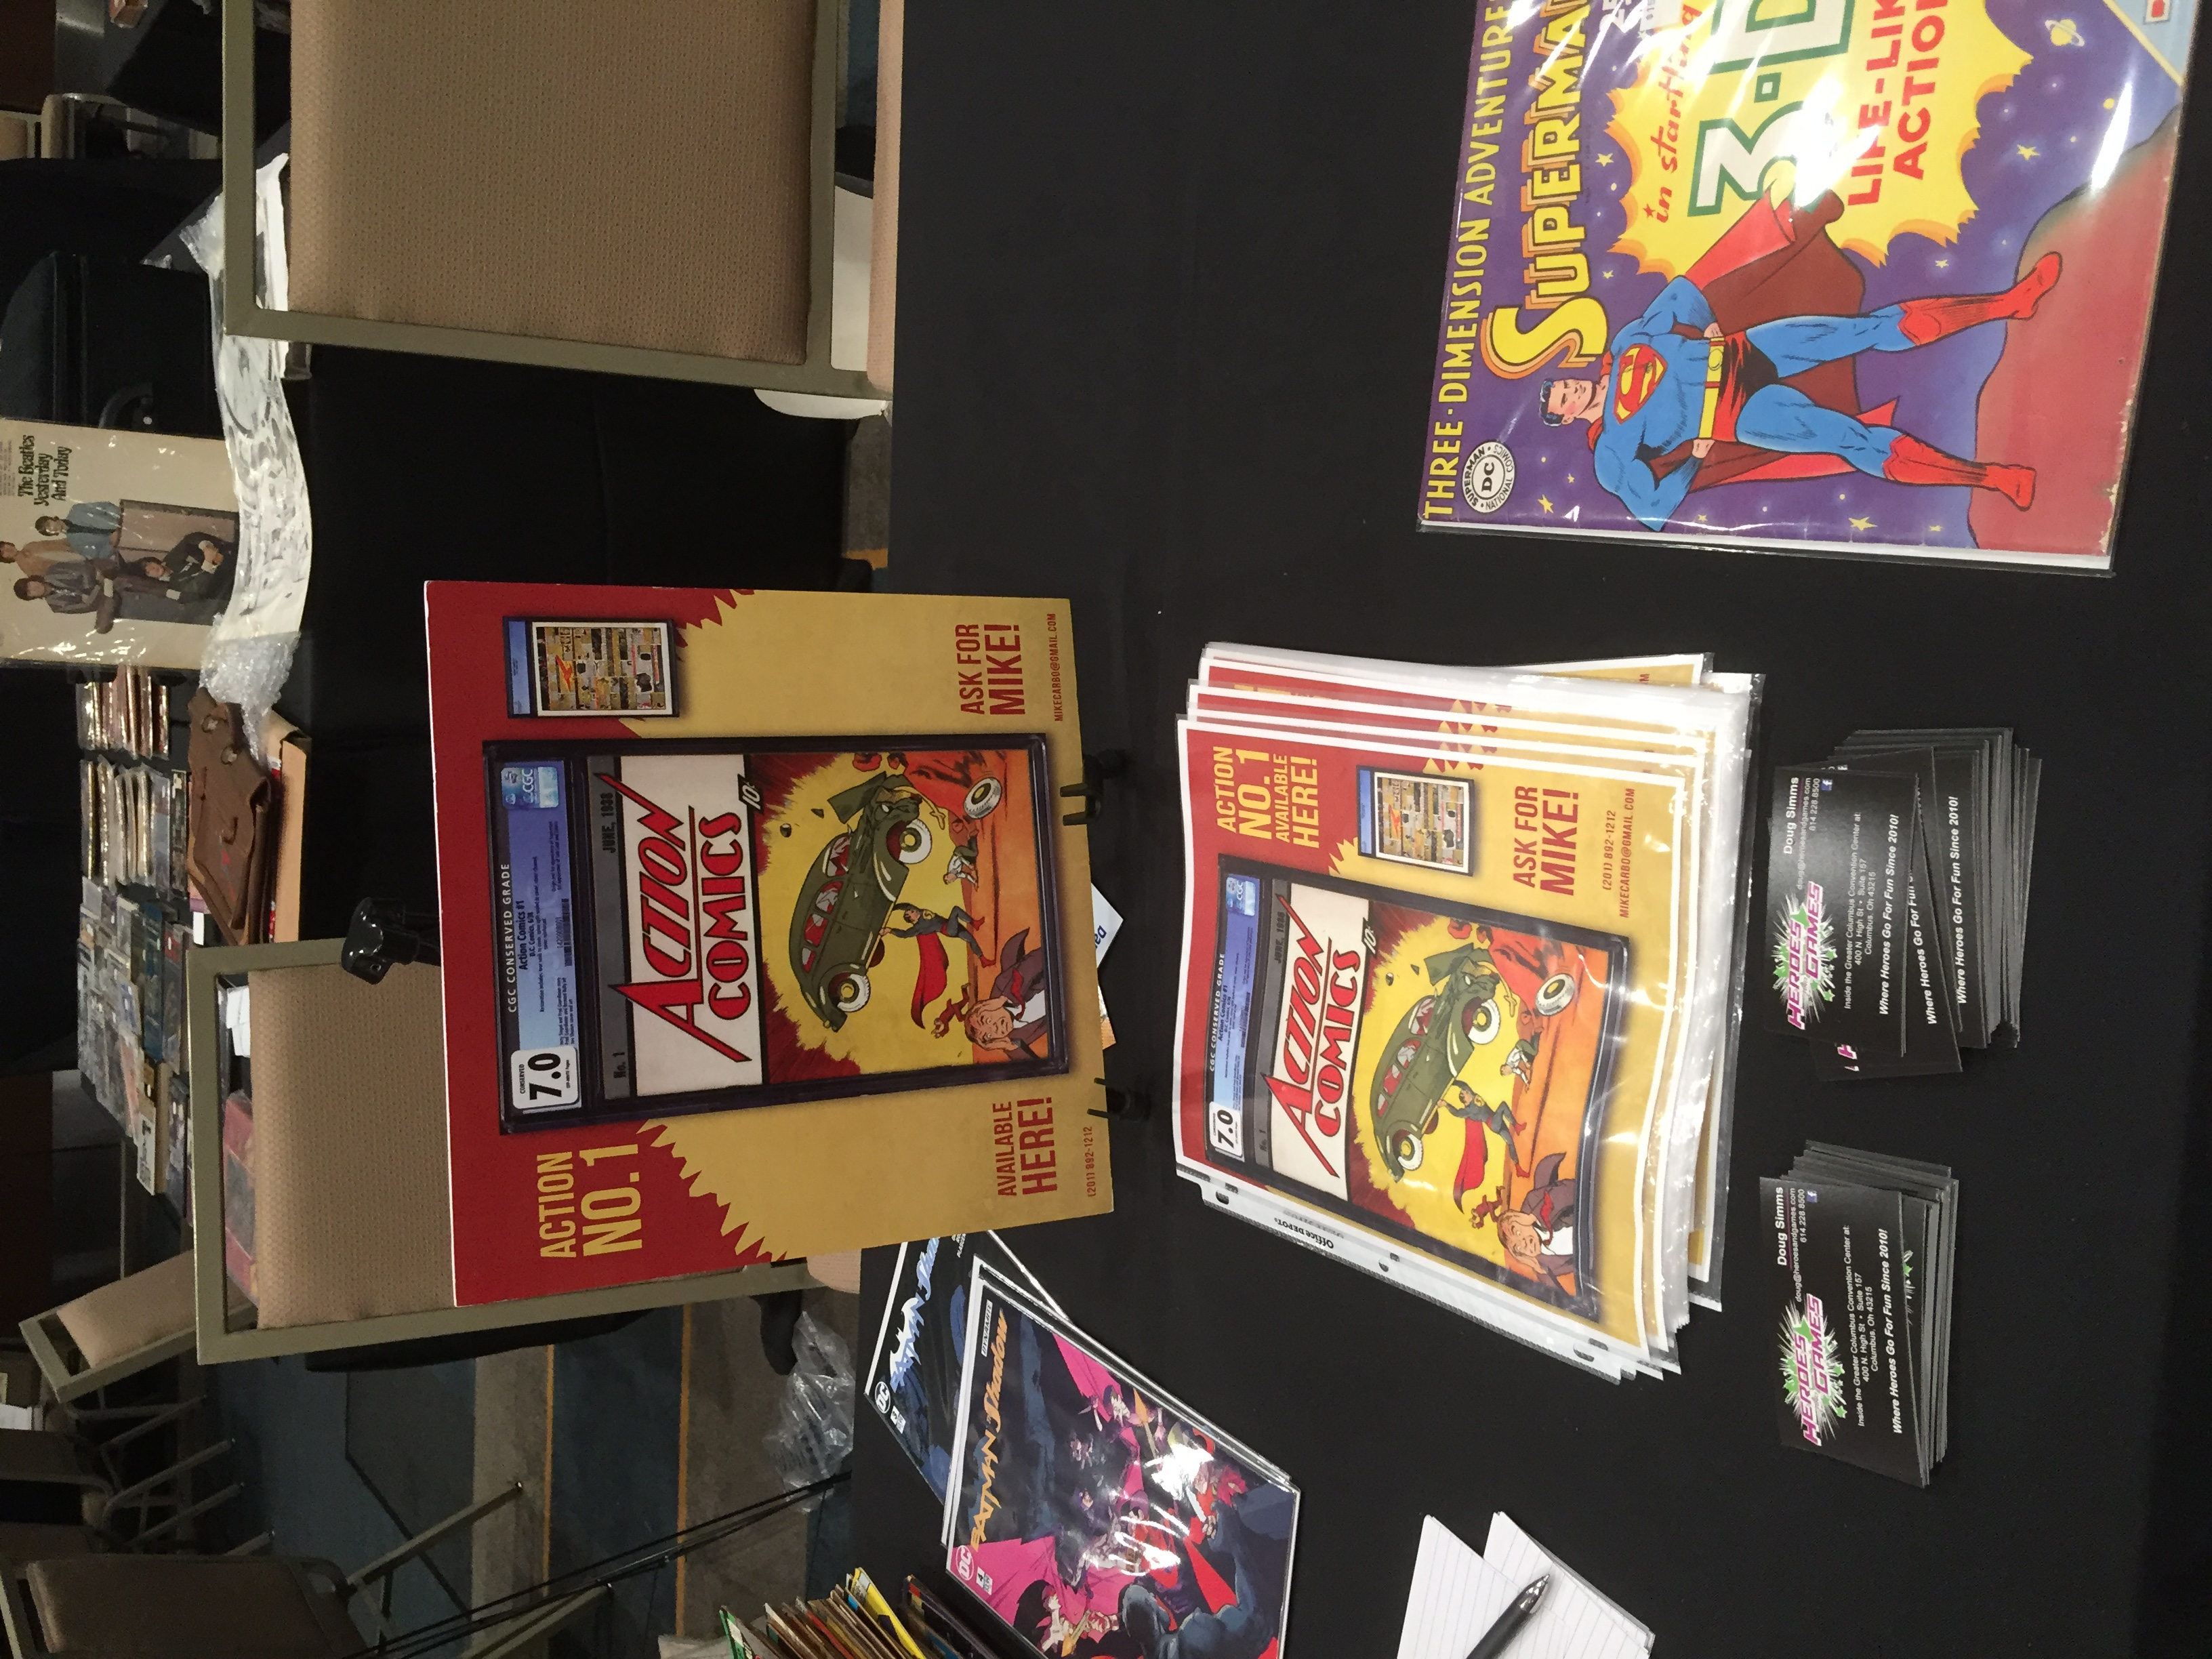 Action Comics first issue (first appearance of Superman) was on display